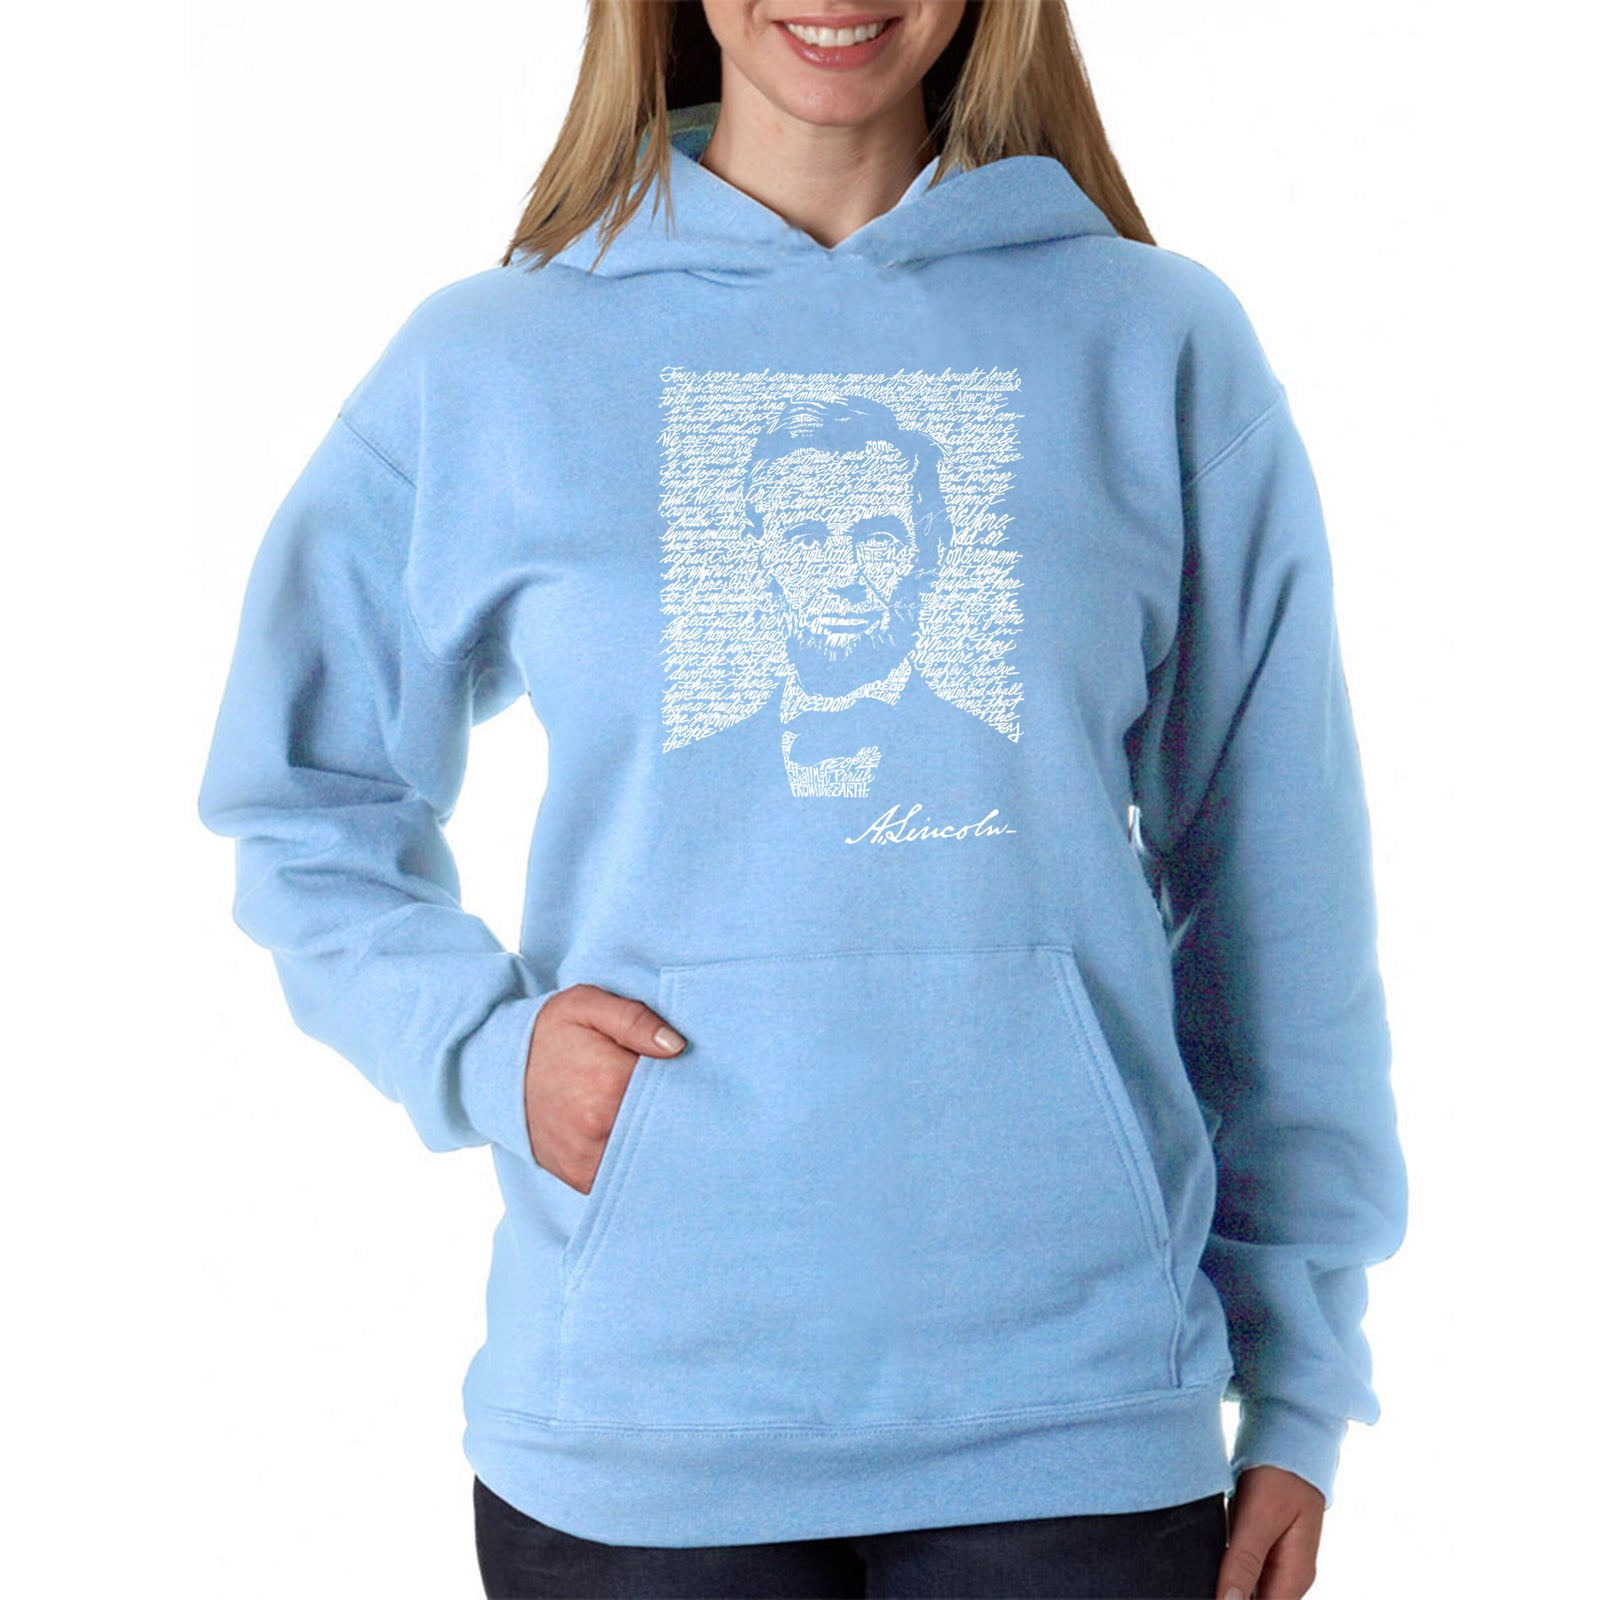 Women's Hooded Sweatshirt -ABRAHAM LINCOLN - GETTYSBURG ADDRESS